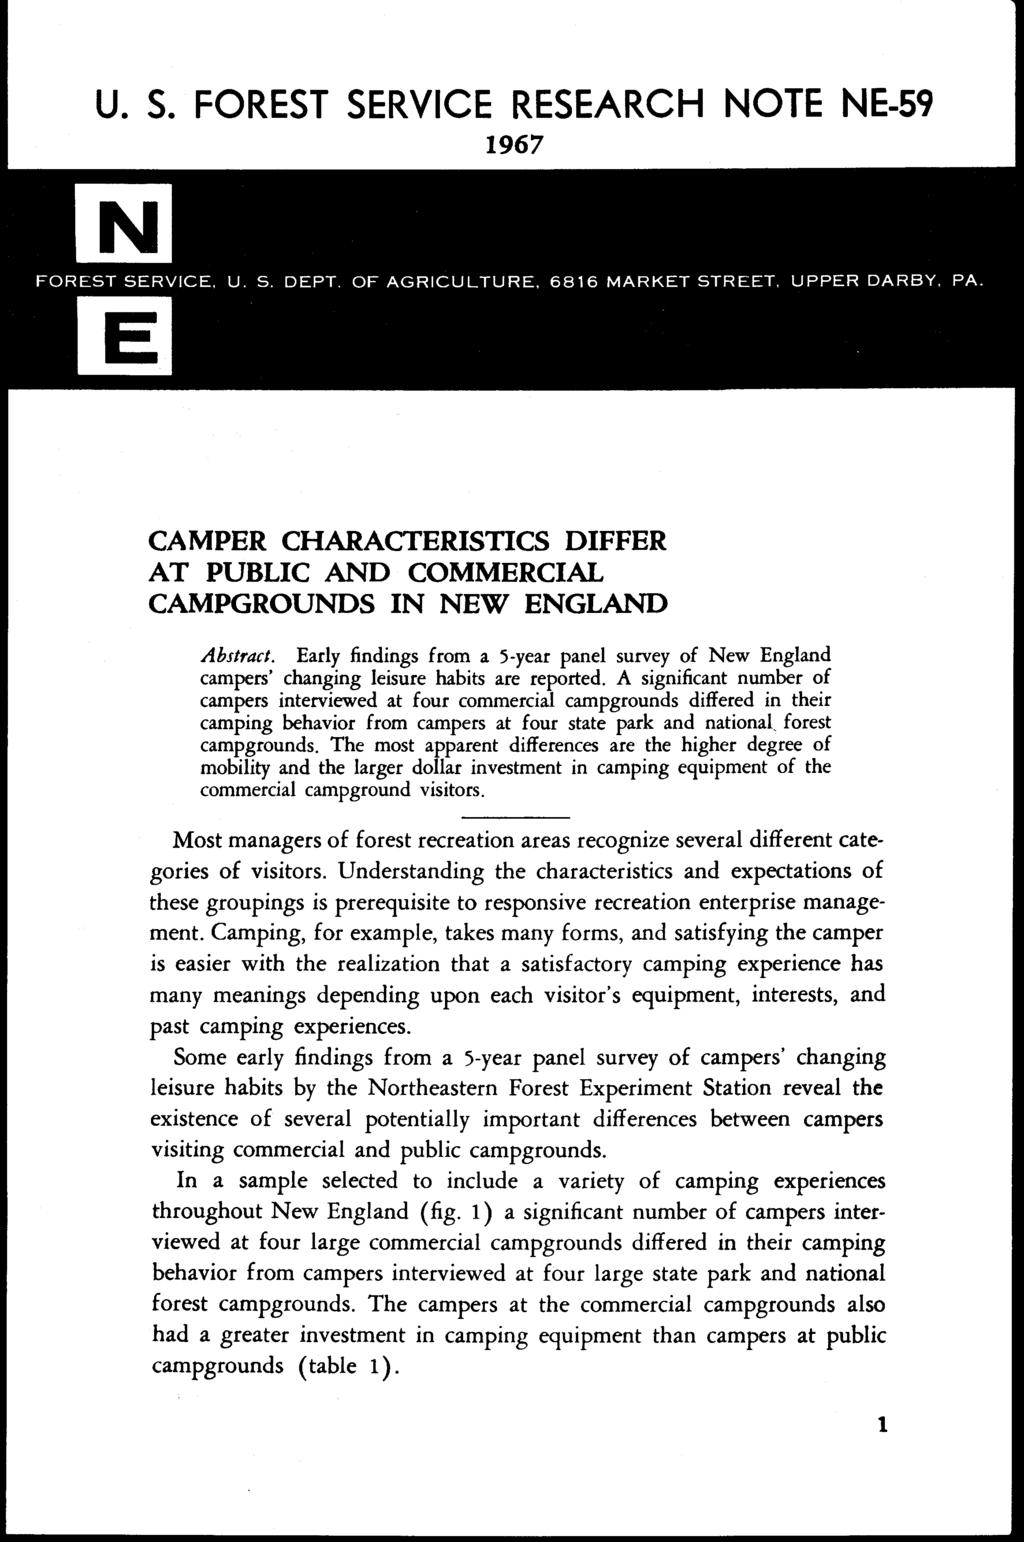 CAMPER CHARACTERISTICS DIFFER AT PUBLIC AND COMMERCIAL CAMPGROUNDS IN NEW ENGLAND Ahact. Early findings from a 5-year panel survey of New England campers' changing leisure habits are reported.